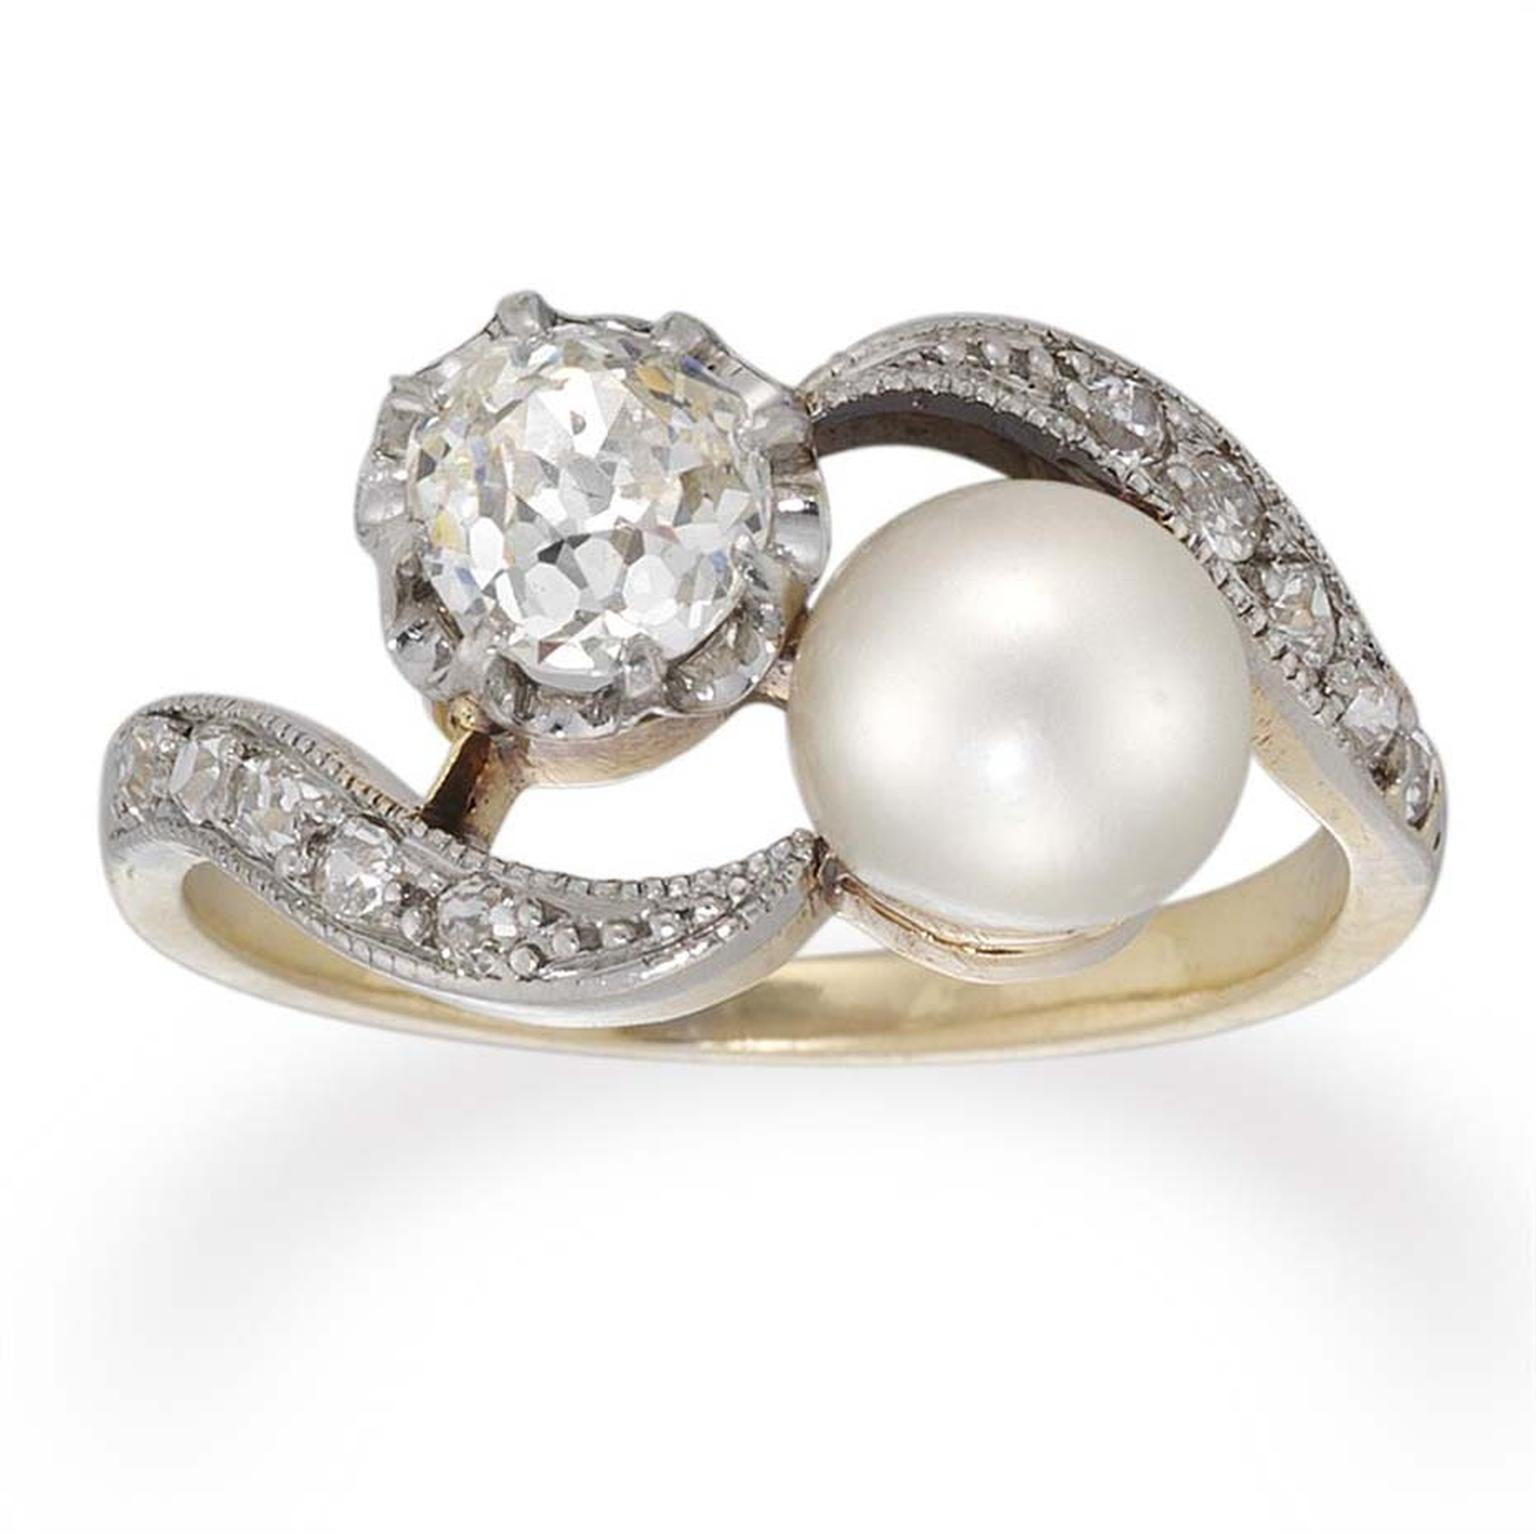 A Beautiful Edwardian Pearl And Diamond Crossover Ring Circa 1910 Available At Bentley Skinner